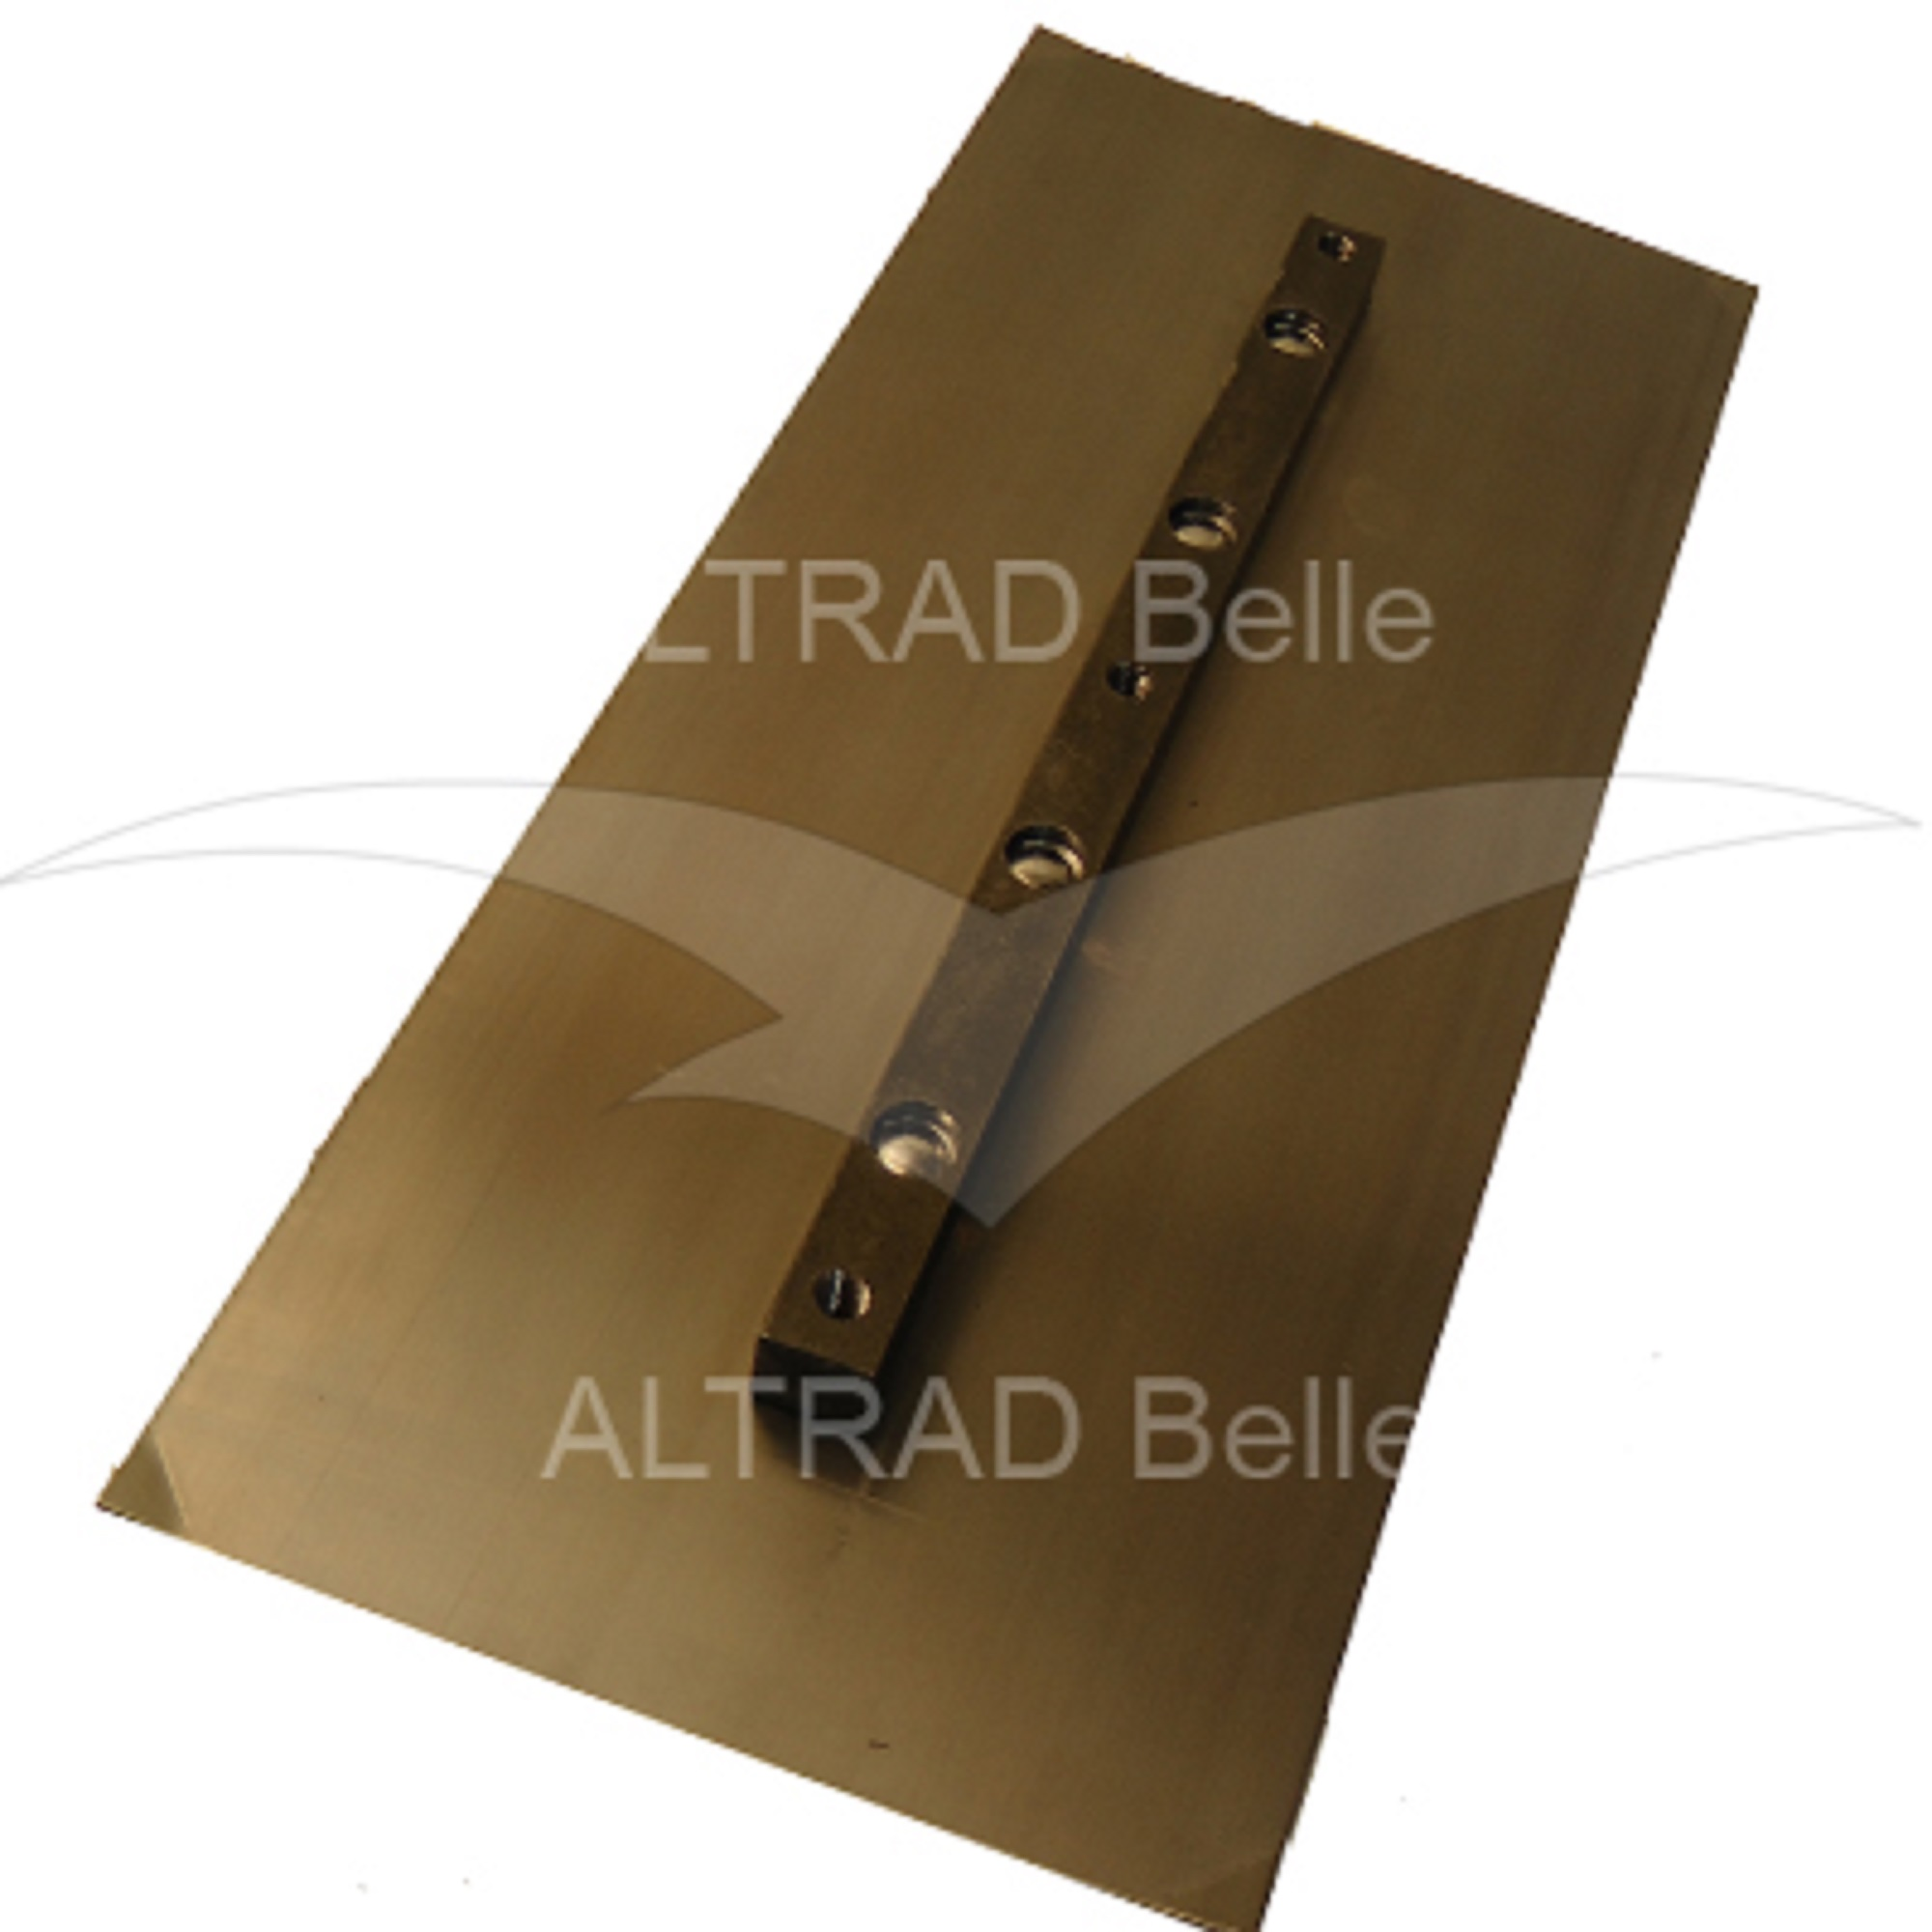 Bronze coloured rectangular metal finishing blade for the Belle PRO 900 trowel